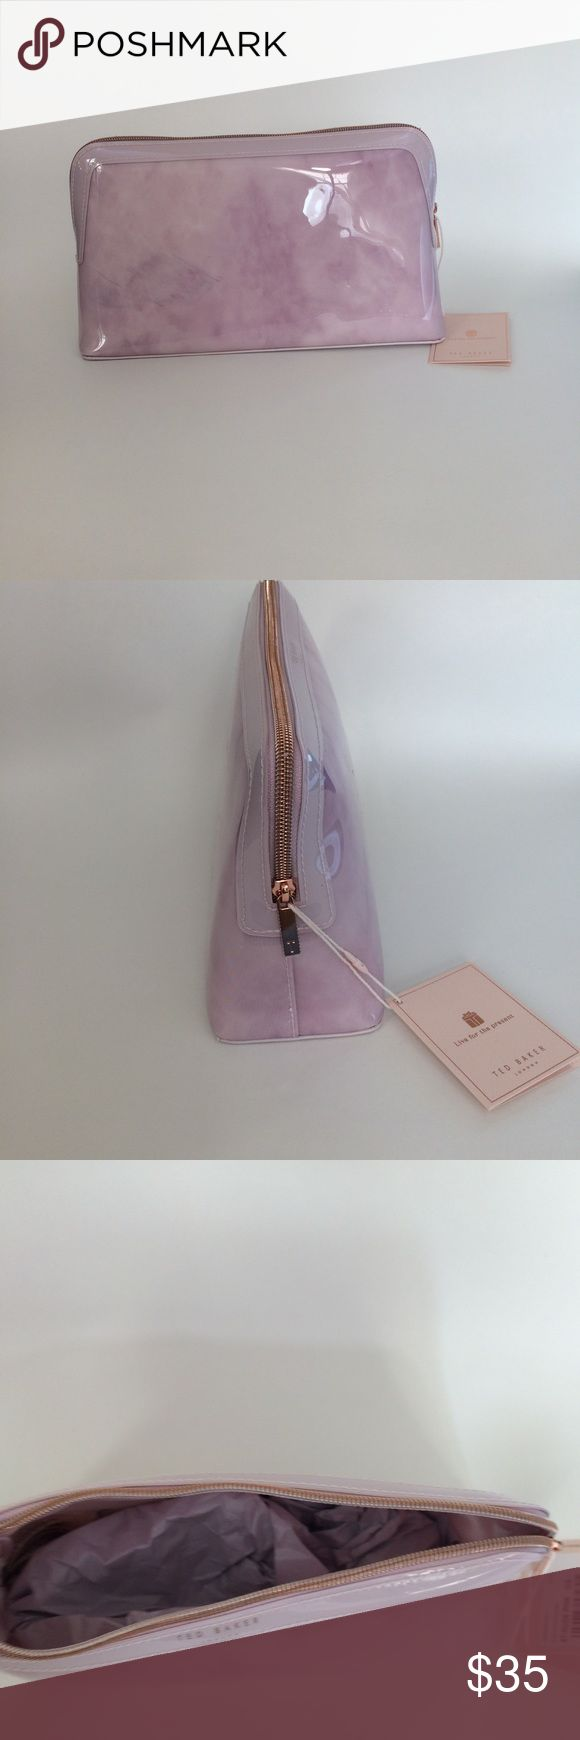 Ted Baker London Tristyn Rose Quartz wash Bag Brand new! Ted Baker London Tristyn Rose Quartz bag. Top zipper closure. Satin lining. Unique quartz looking pattern. Shiny finish. Structured silhouette with flat base for stability...won't tip over when you put it down. Color: Nude pink           Have a question leave it in the comments. Ted Baker London Bags